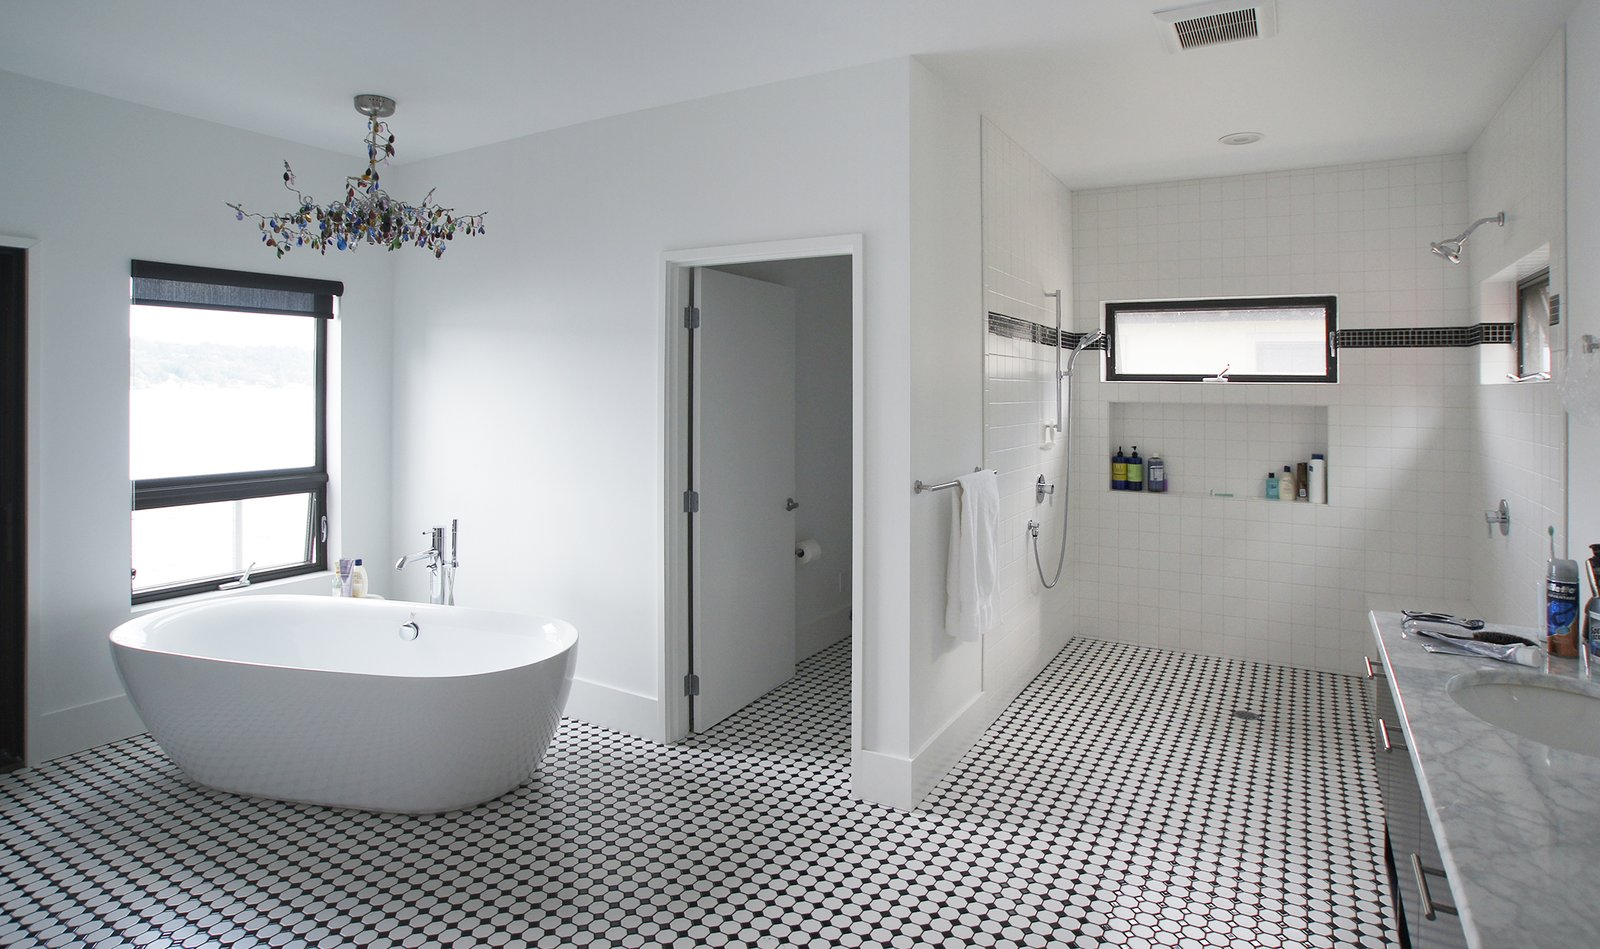 This black and white bathroom is open to the master suite as well as the deck and view beyond.